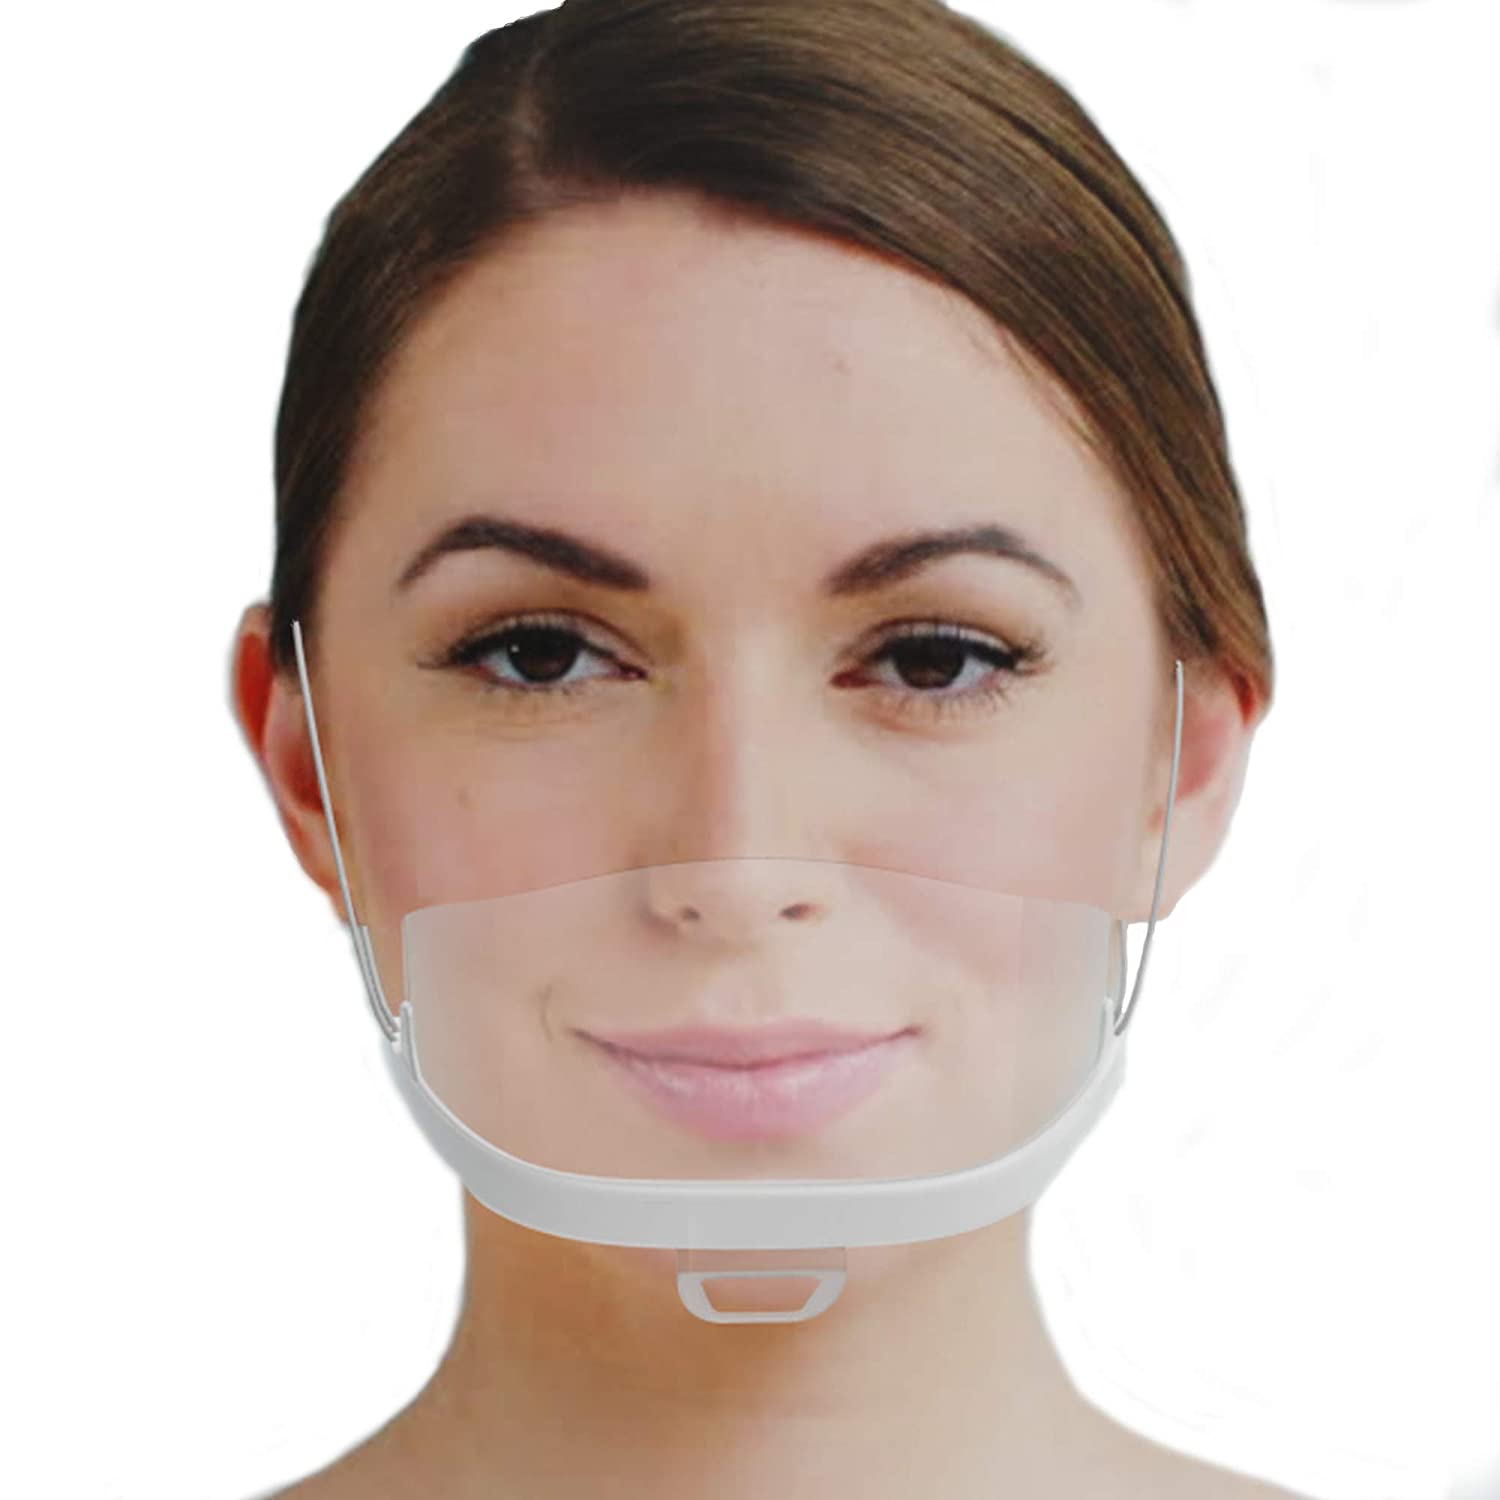 10 x plastic face visor   protective visor in white   universal face protection   visor to protect against liquids   Face Shield for mouth nose